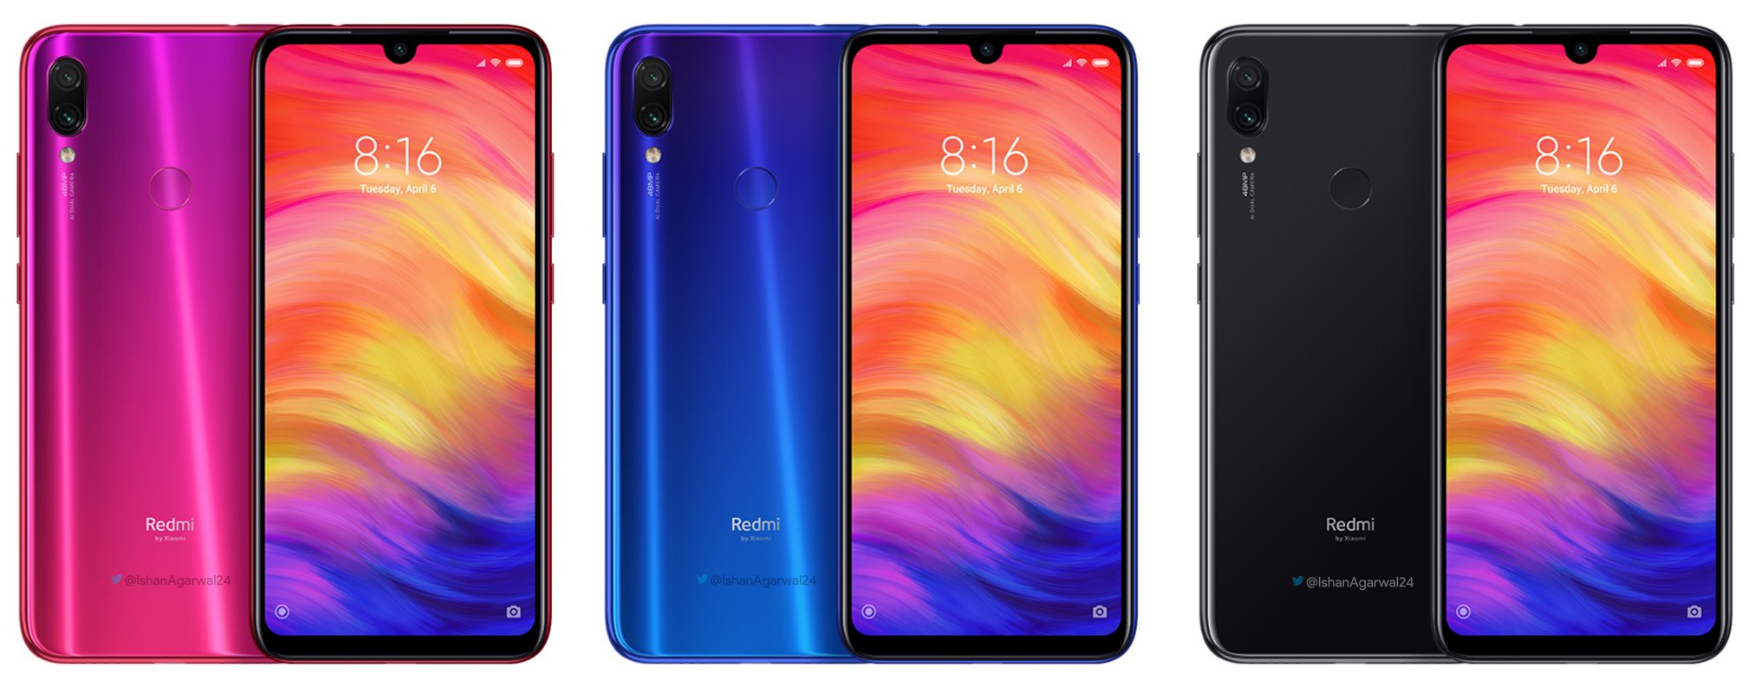 Redmi Note 7 Pro Price In Nepal Full Specification And Features